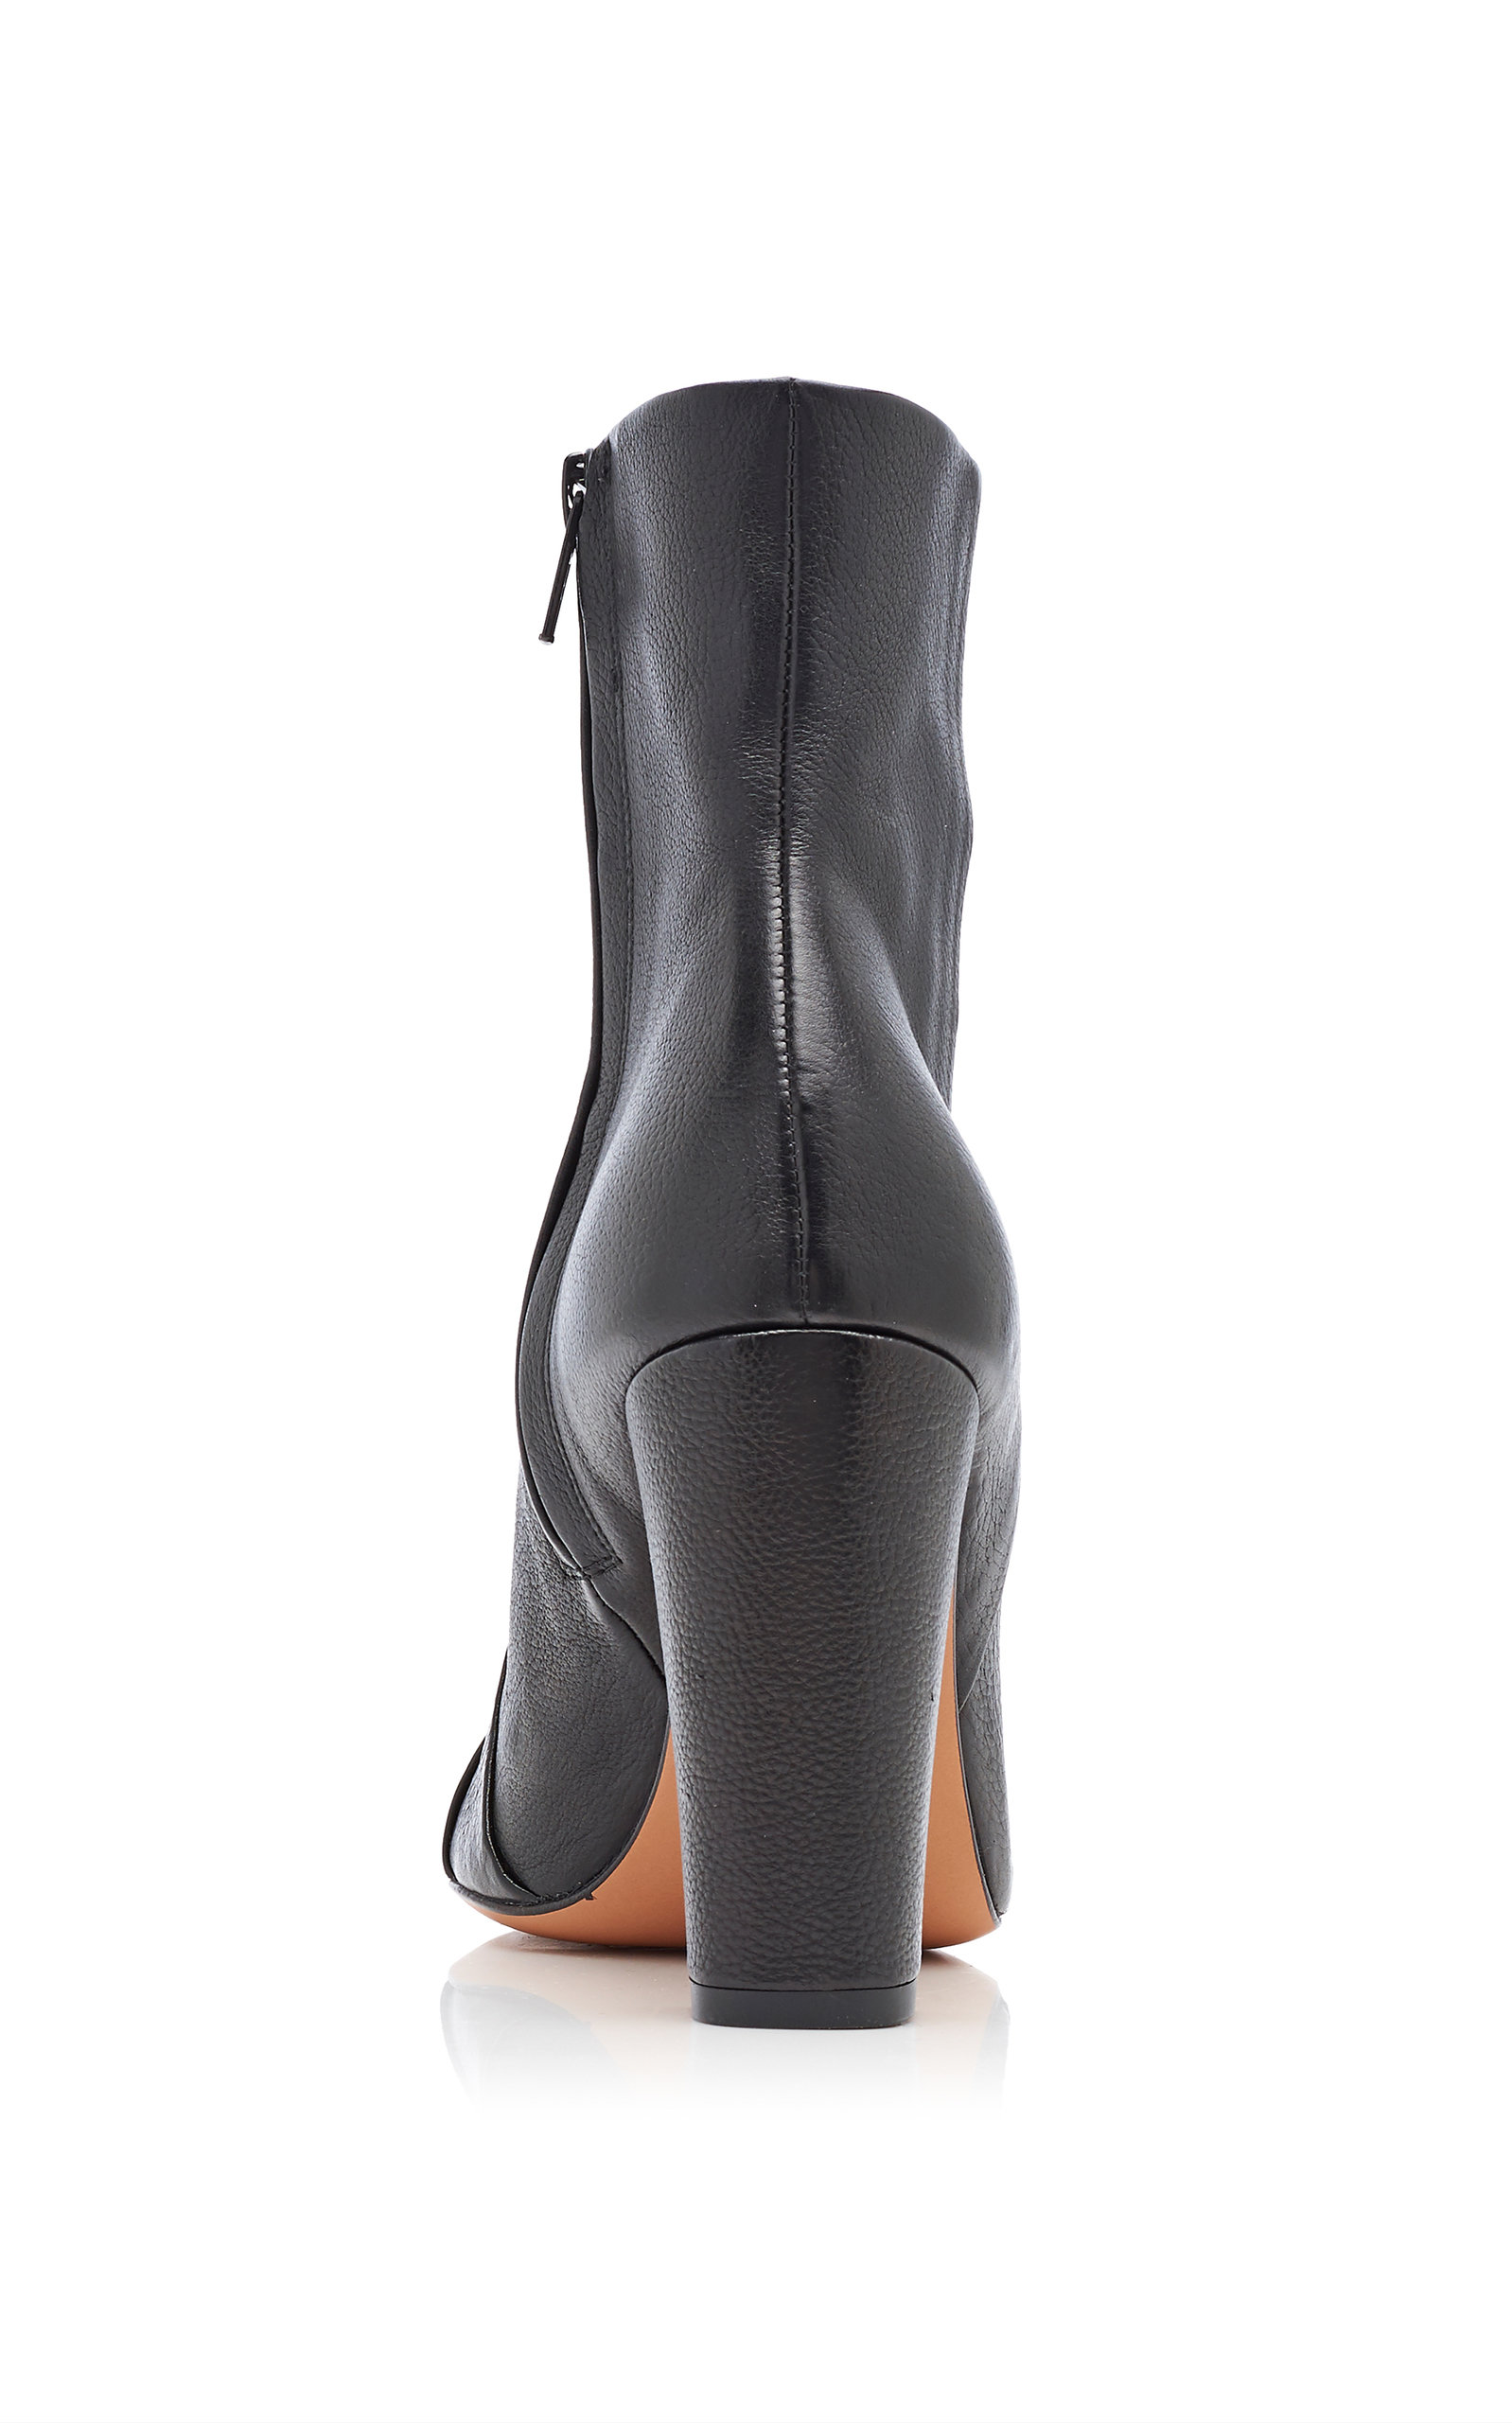 Veronica Beard Boots Marla Paneled Leather Ankle Boots